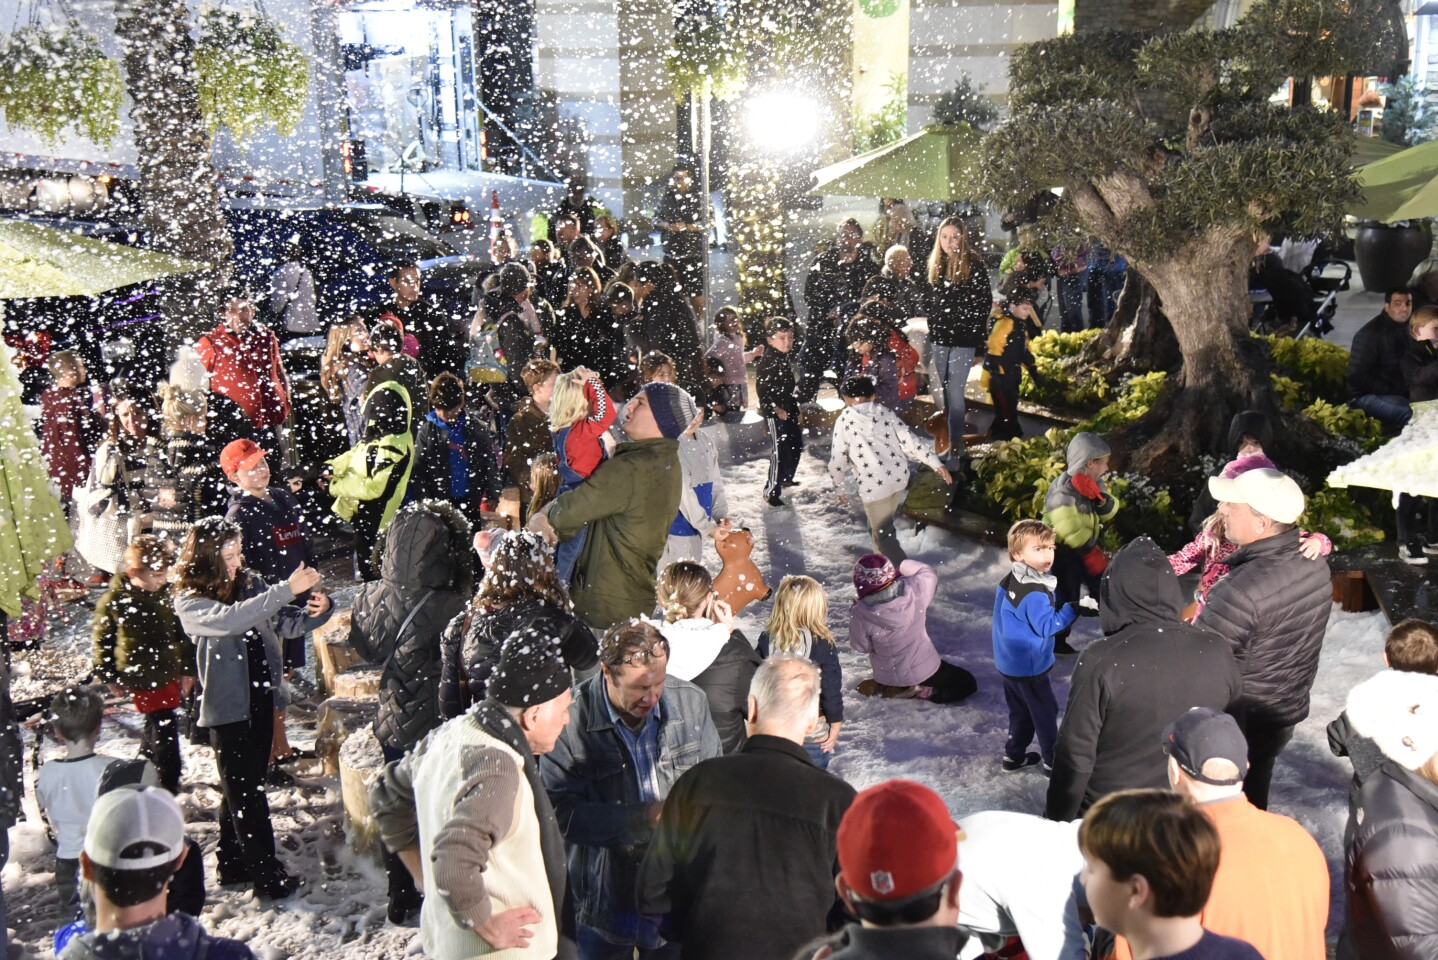 Flower Hill mall hosted the festivities which included a snow machine